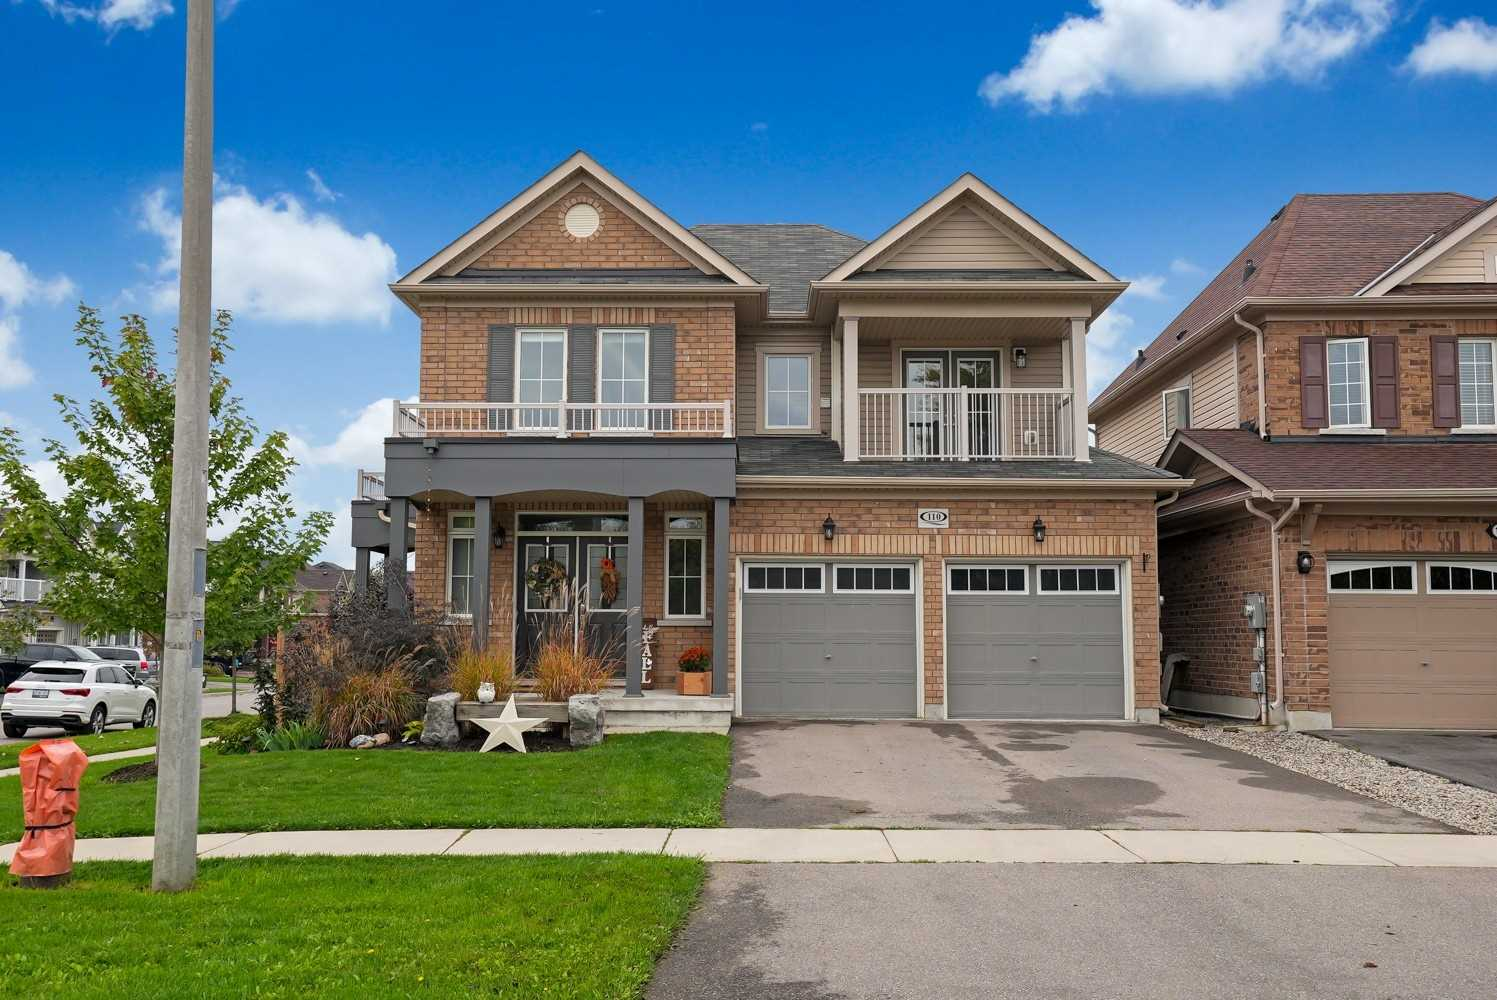 Detached house For Sale In Clarington - 110 Edwin Carr St, Clarington, Ontario, Canada L1C0R3 , 4 Bedrooms Bedrooms, ,3 BathroomsBathrooms,Detached,For Sale,Edwin Carr